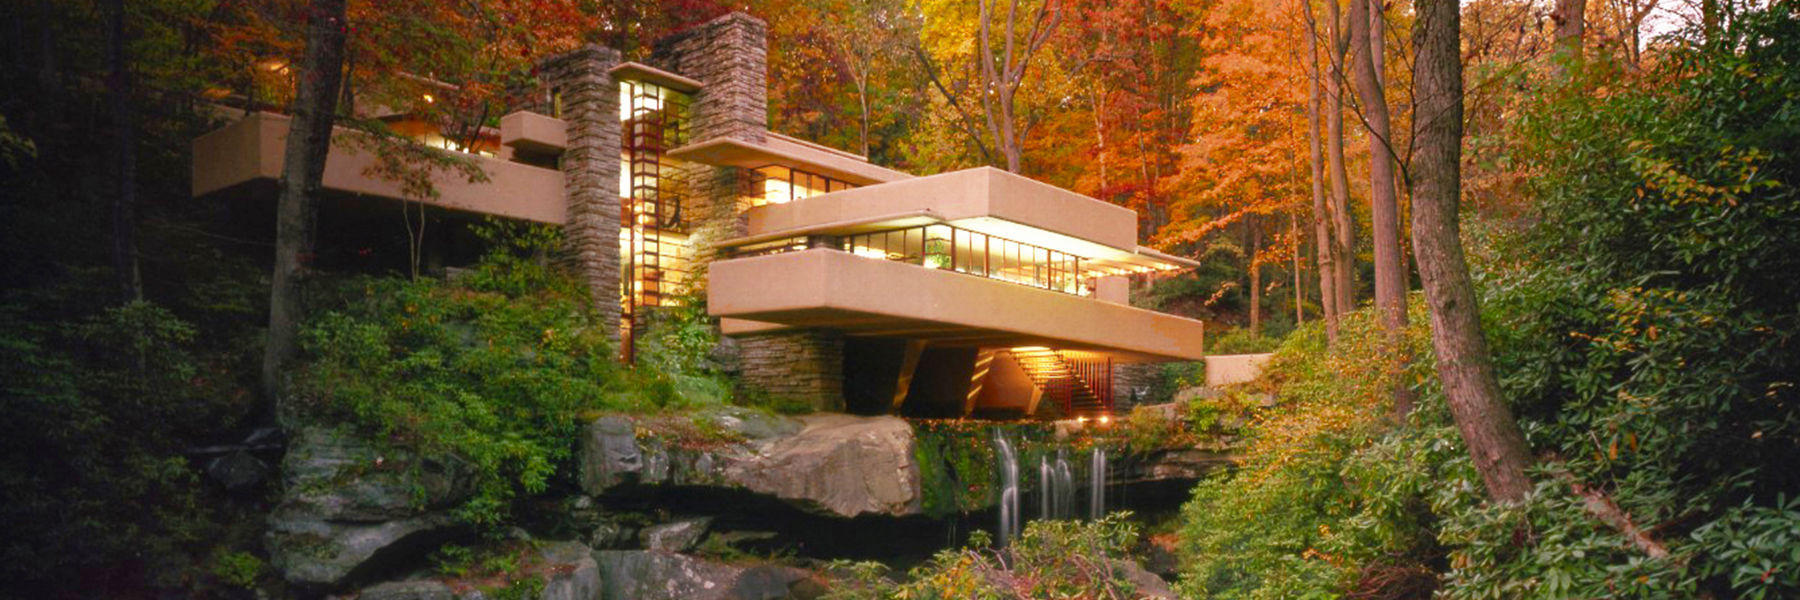 Pictures of falling waters house